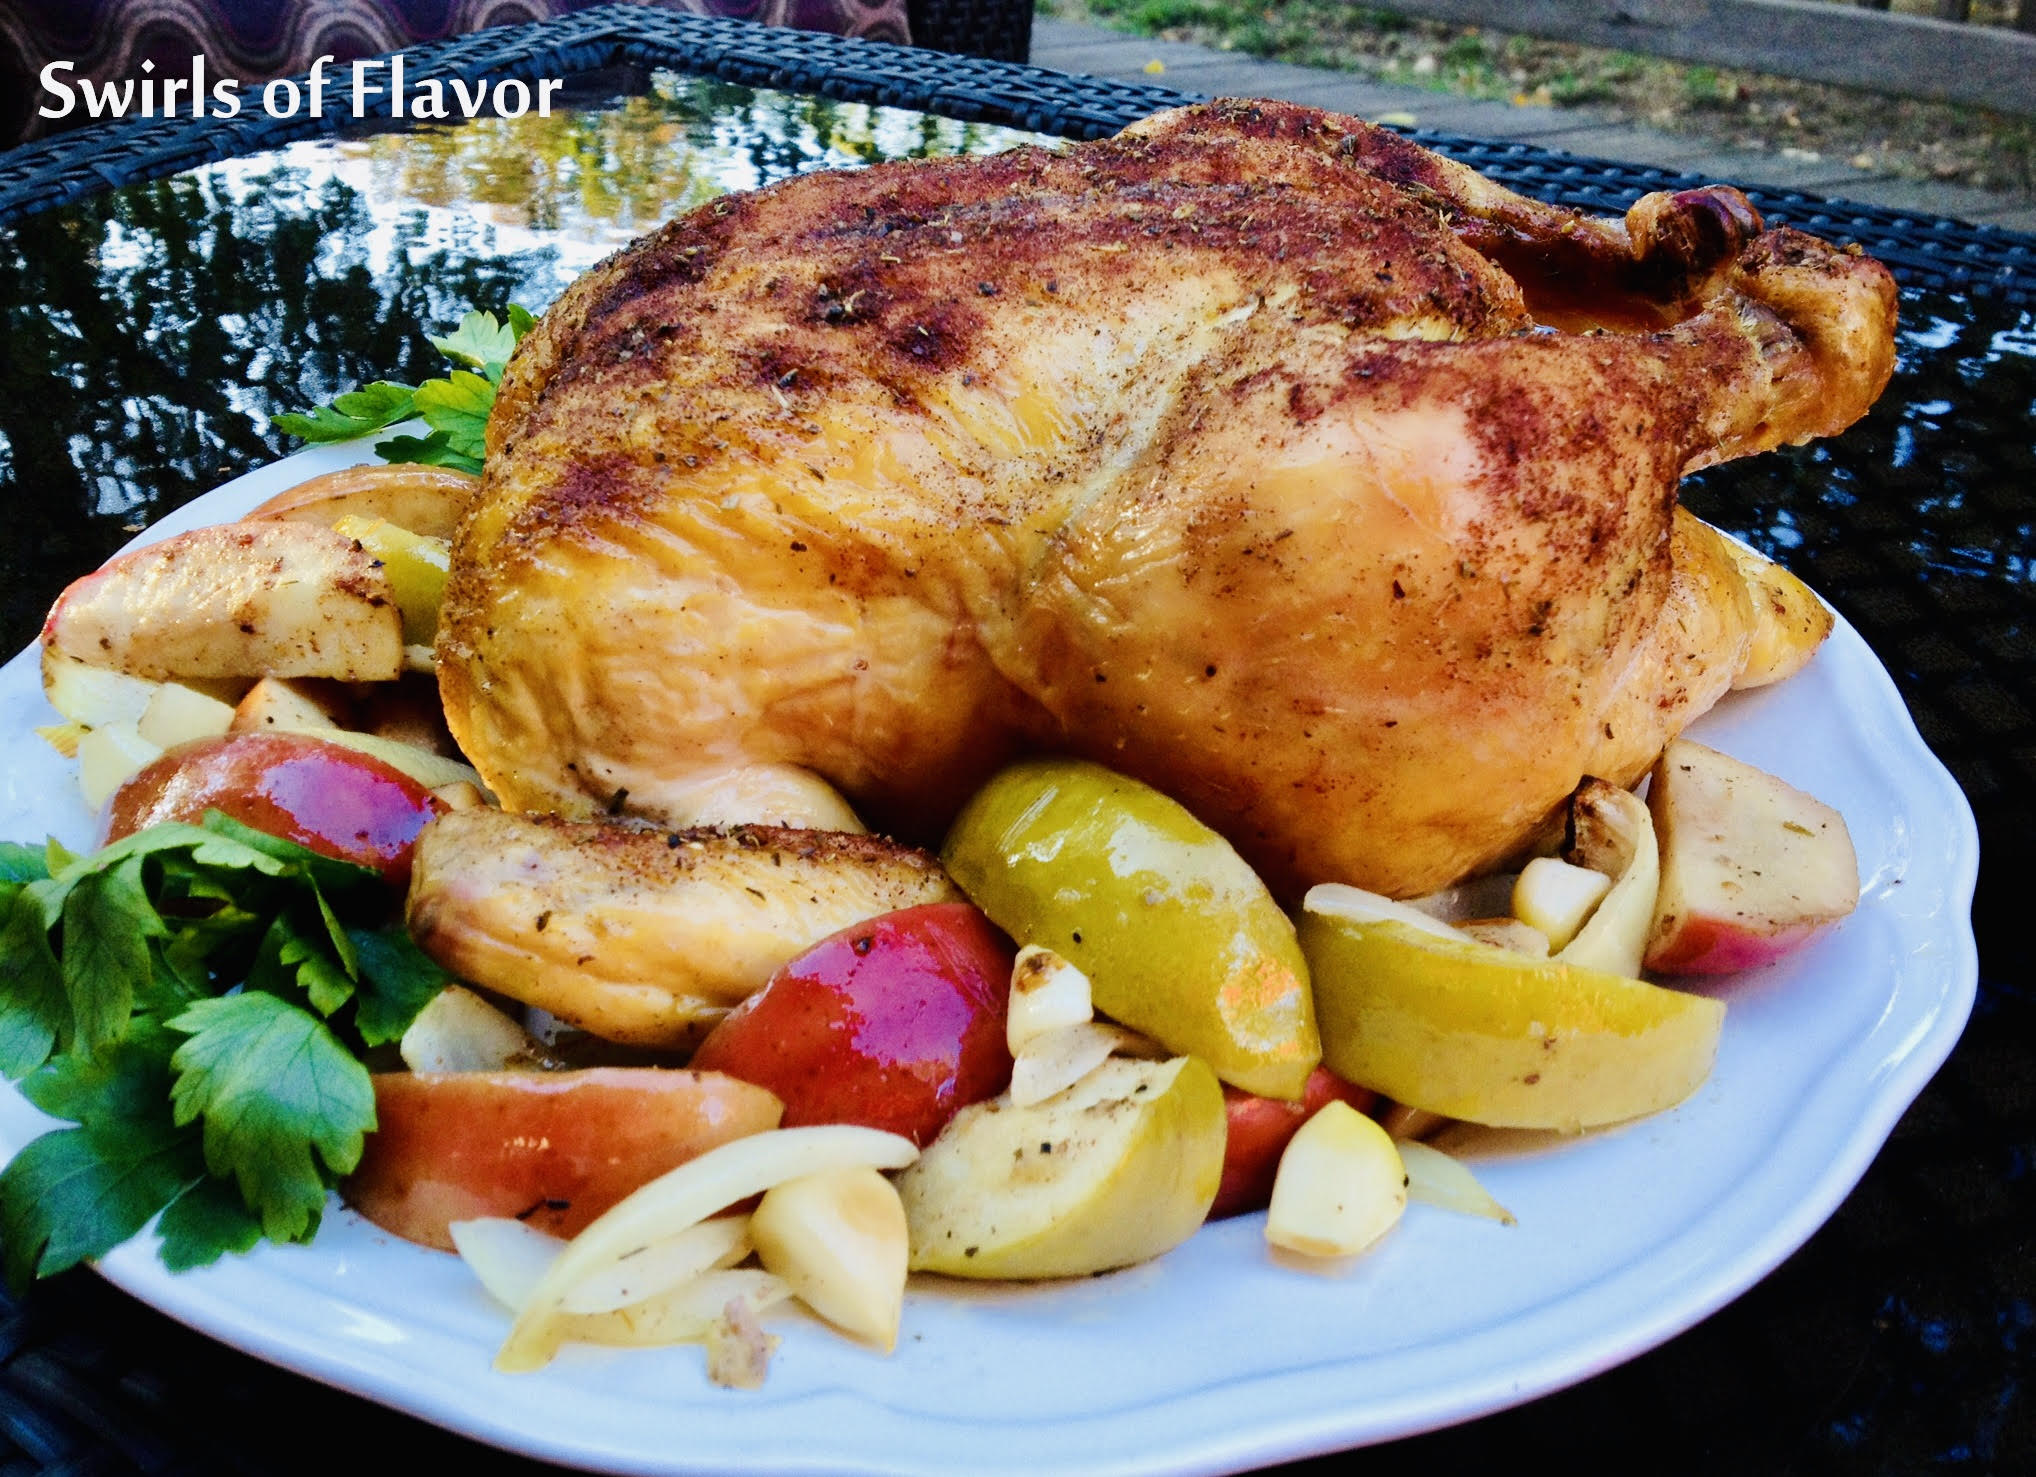 oven roasted chicken with onions and apples